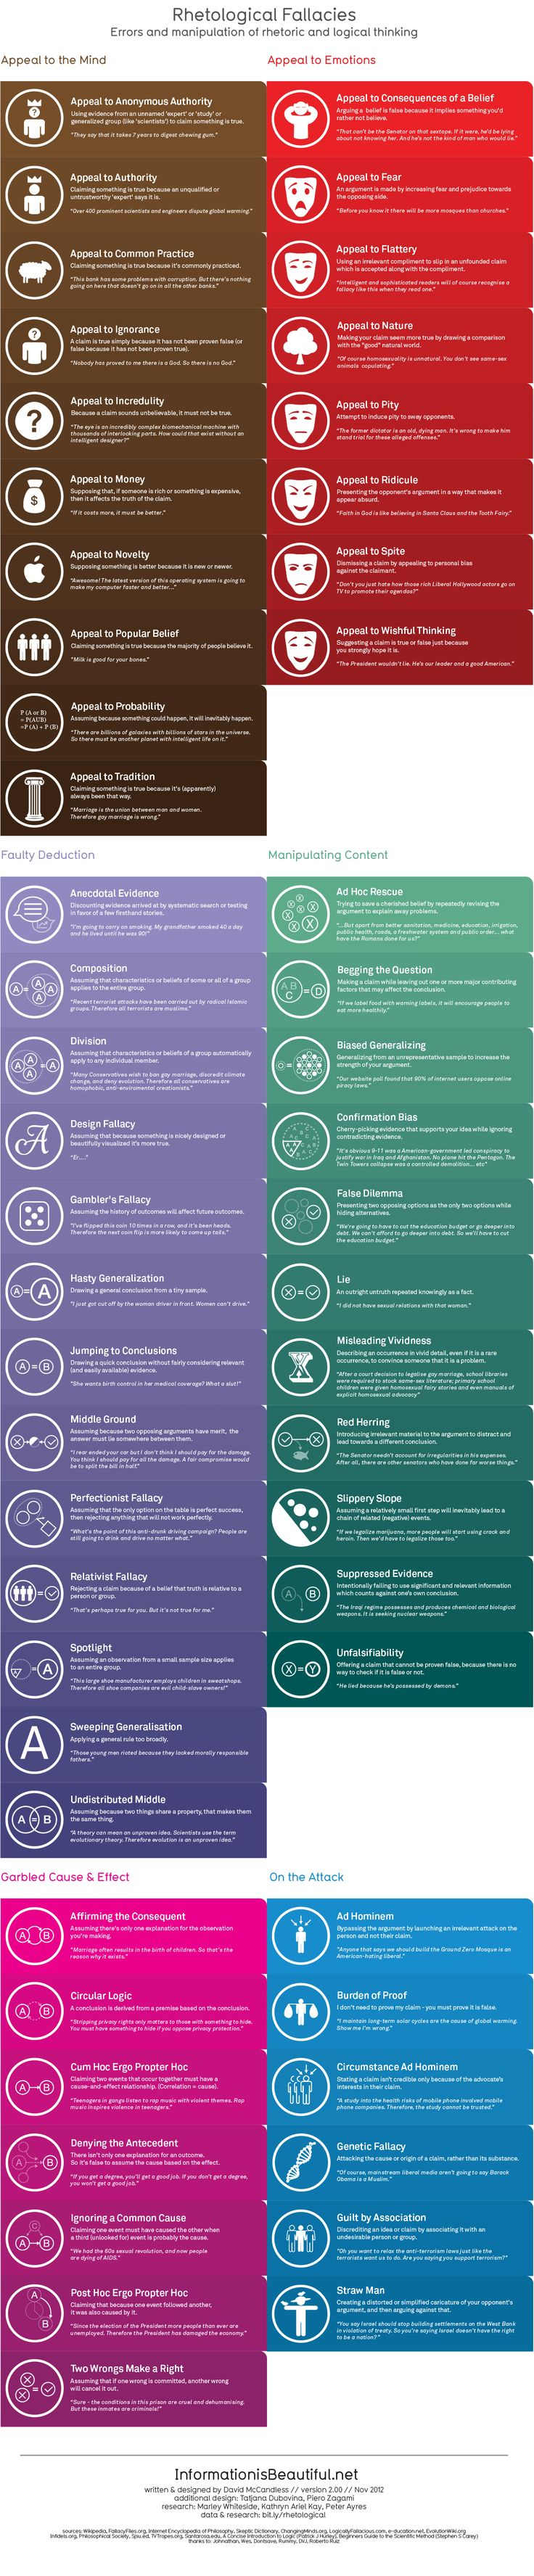 Rhetological Fallacies - Information is Beautiful